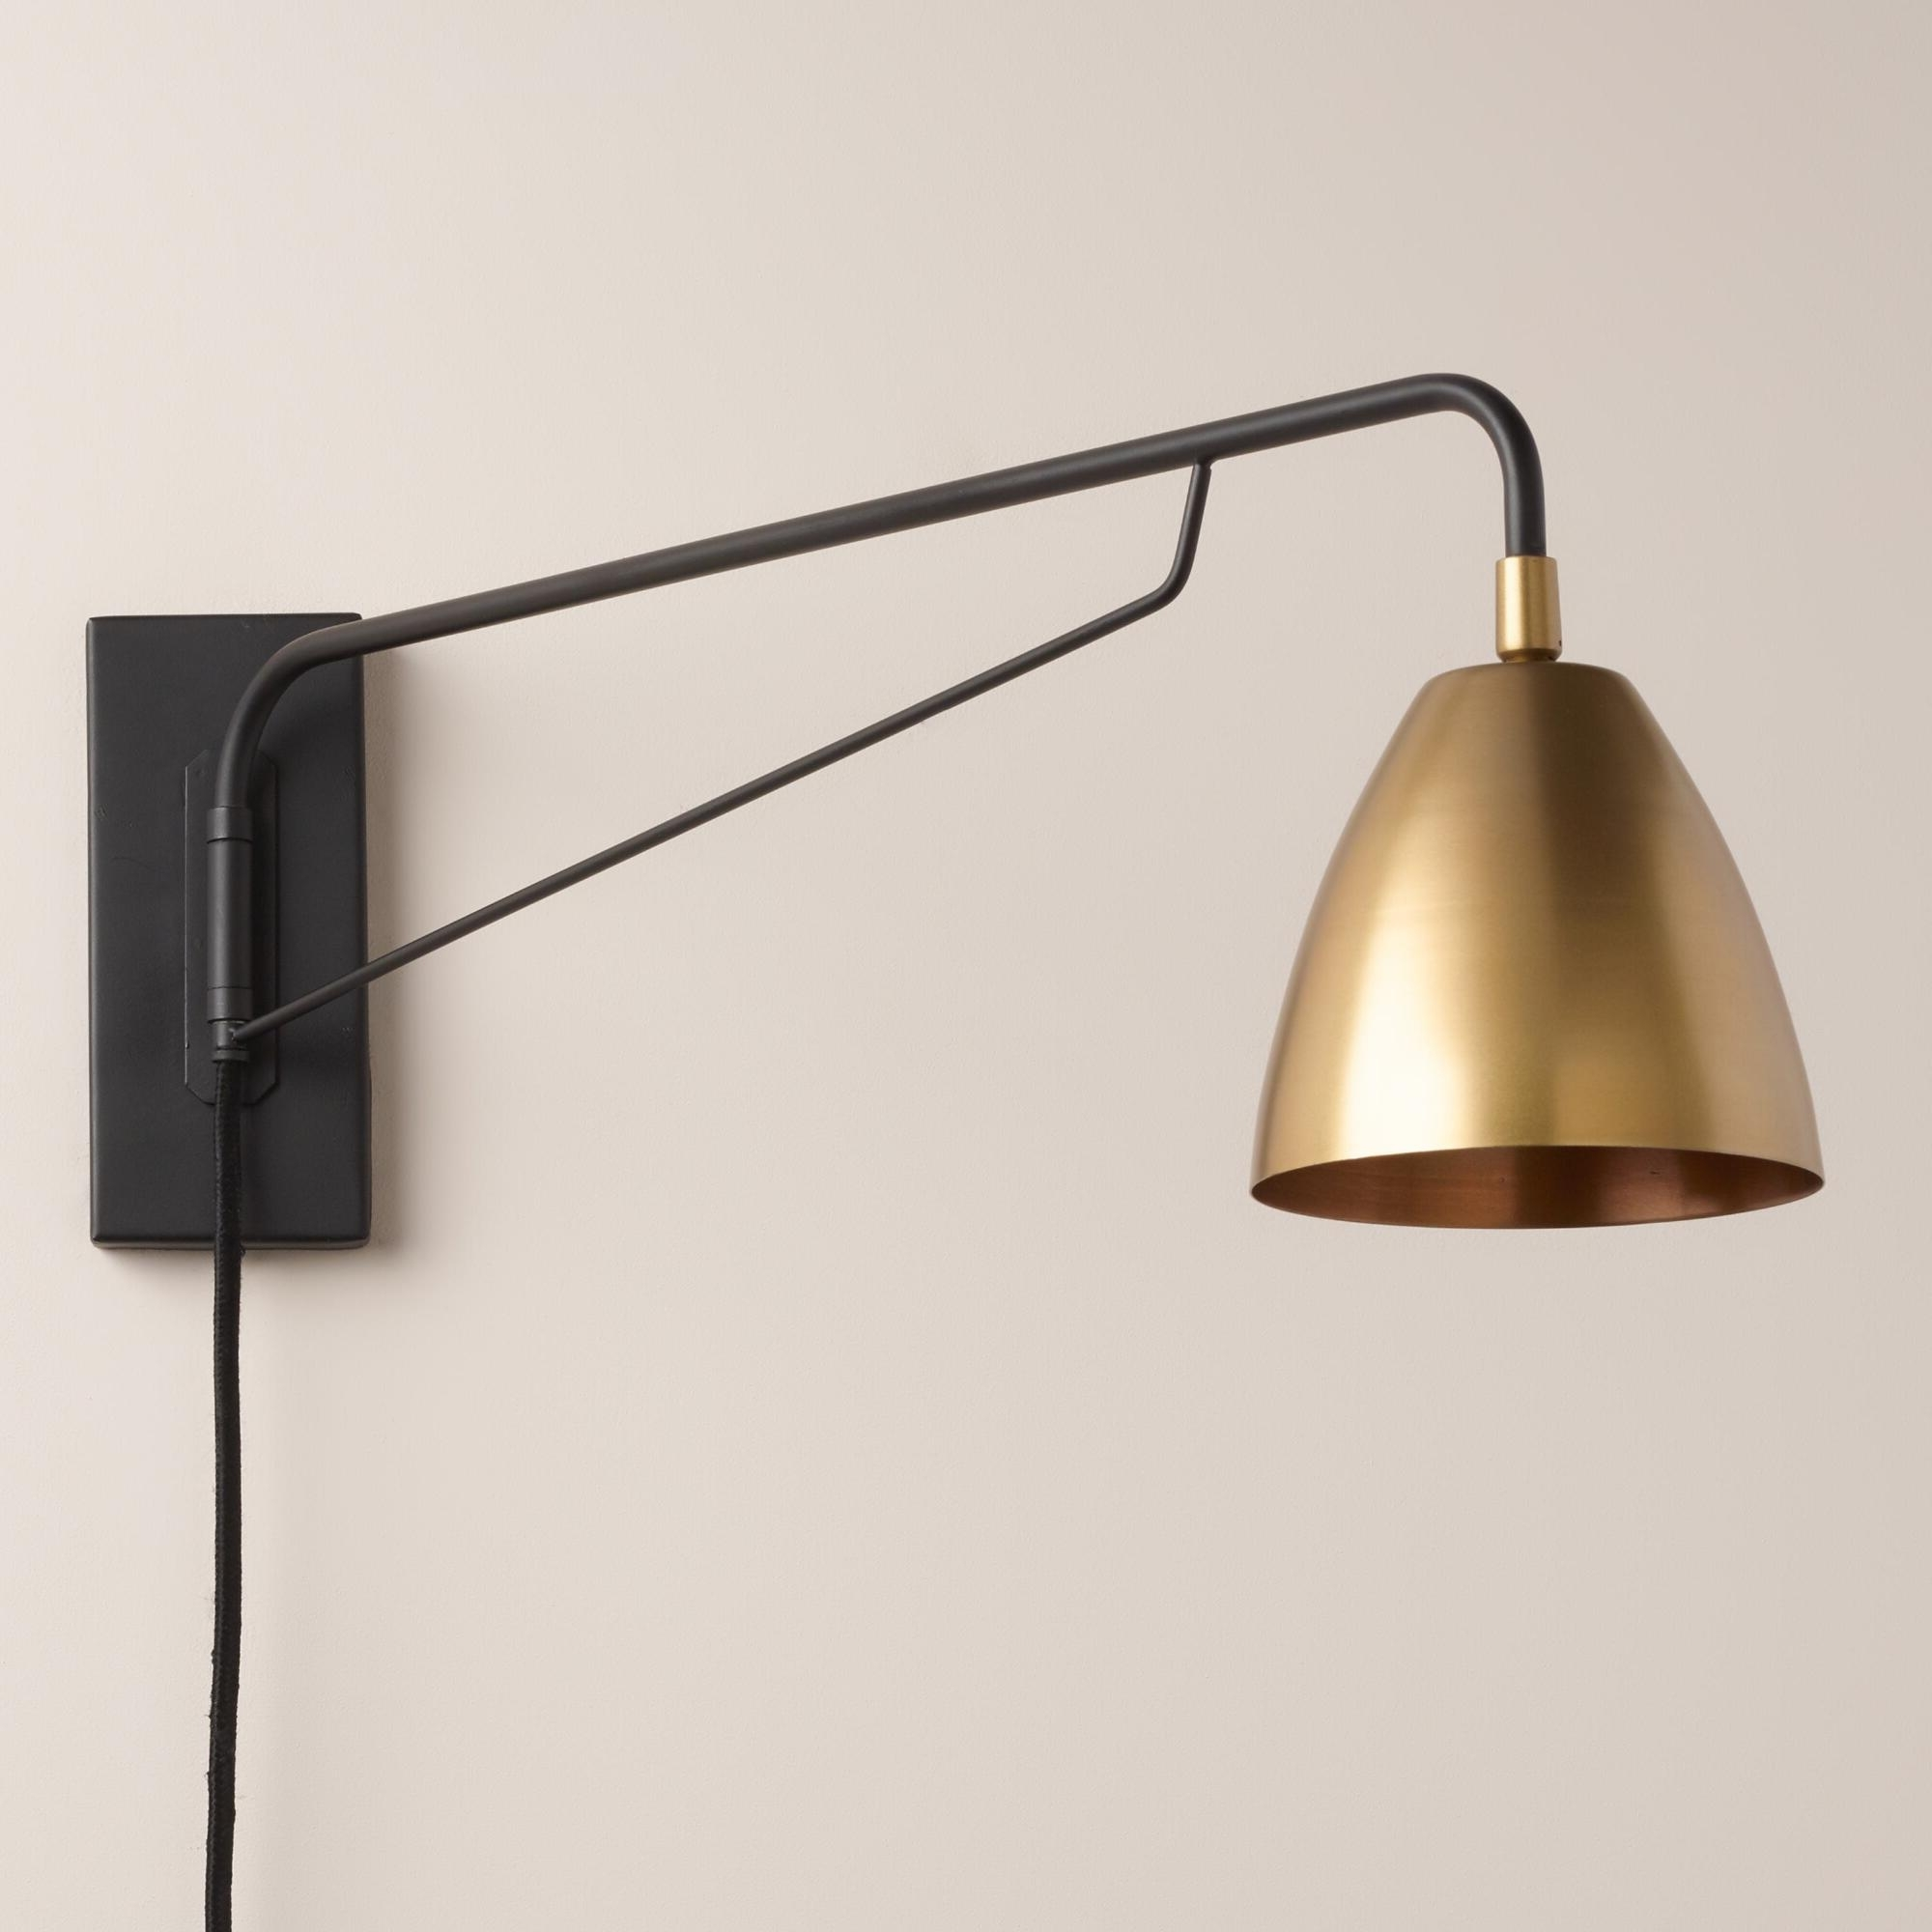 Newest Living Room Table Reading Lamps Inside Light : Small Table Lamps Bedside Book Reading Light Wall With (View 11 of 20)